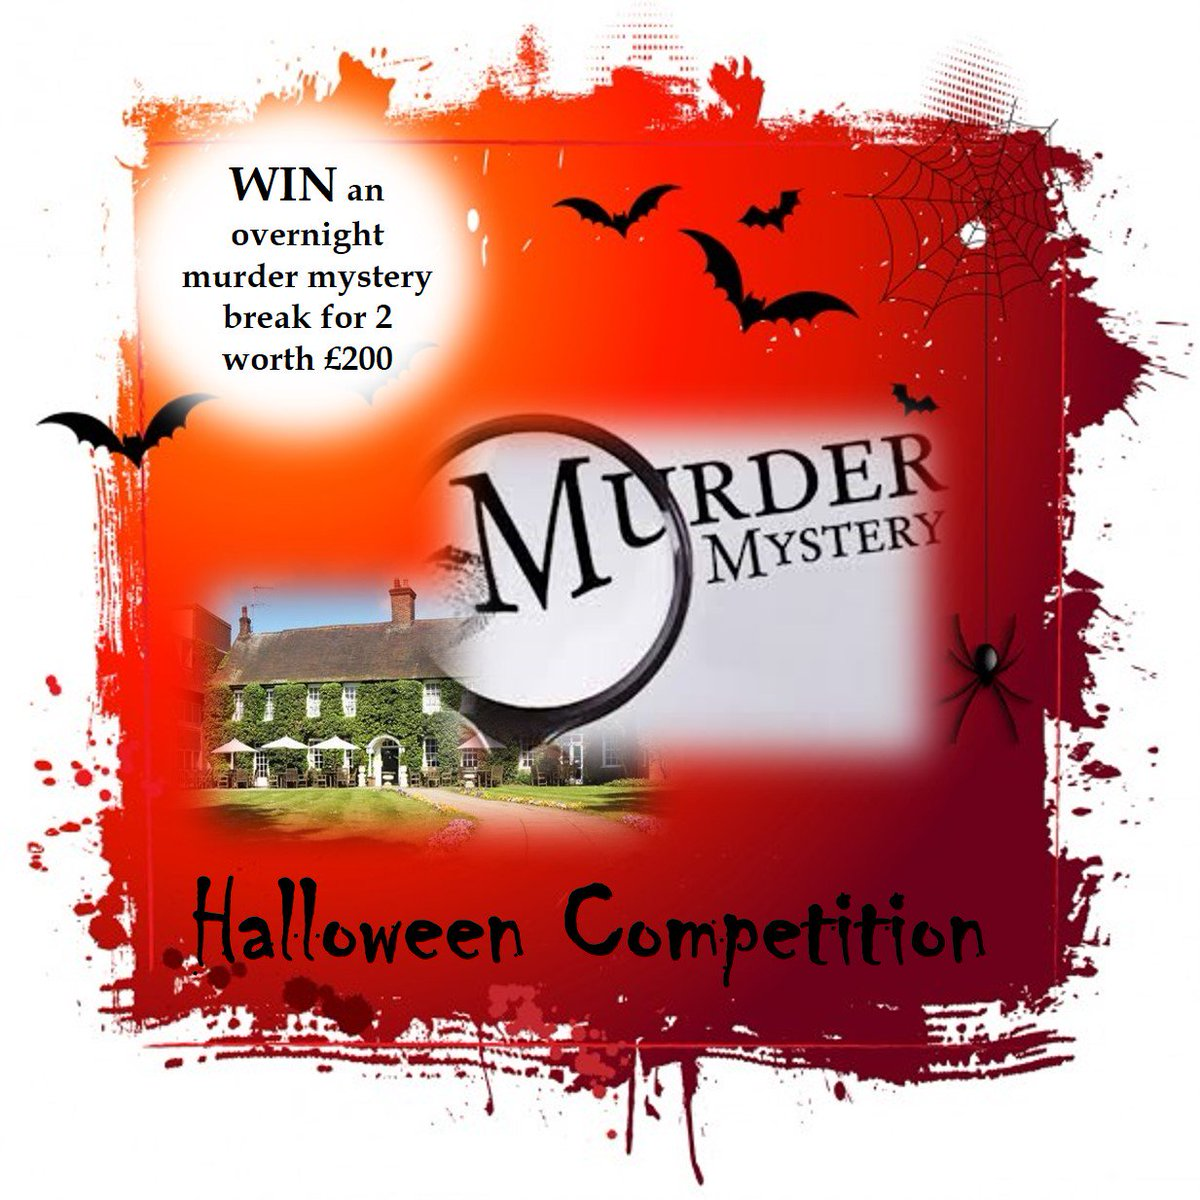 Only 8 days left to enter our Halloween competition to WIN this overnight murder mystery break for 2 worth £200, simply click here  https:// adp-distribution.co.uk/brochure-reque st/  …  download our brand new brochure, hurry competition closes on 23rd October 2019 at 12pm.  T&C's apply  https:// adp-distribution.co.uk/privacy/    <br>http://pic.twitter.com/LTKCEOrbtp